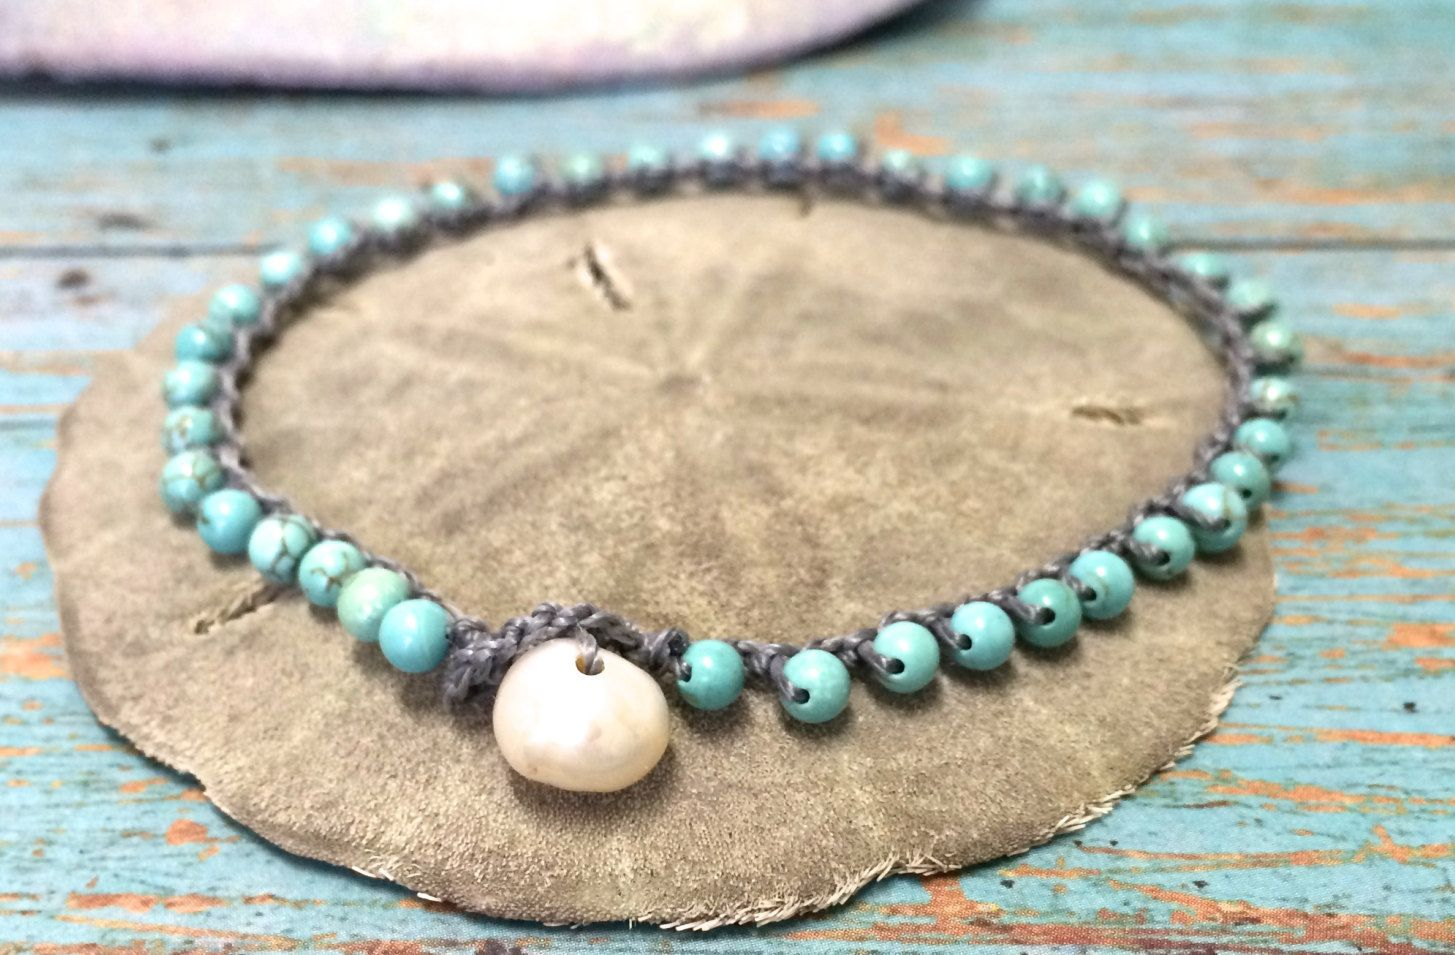 beads bracelet summer women pied anklet ankle de foot anklets product sandals chaine bead bracelets for jewelry turquoise bohemian index boho barefoot